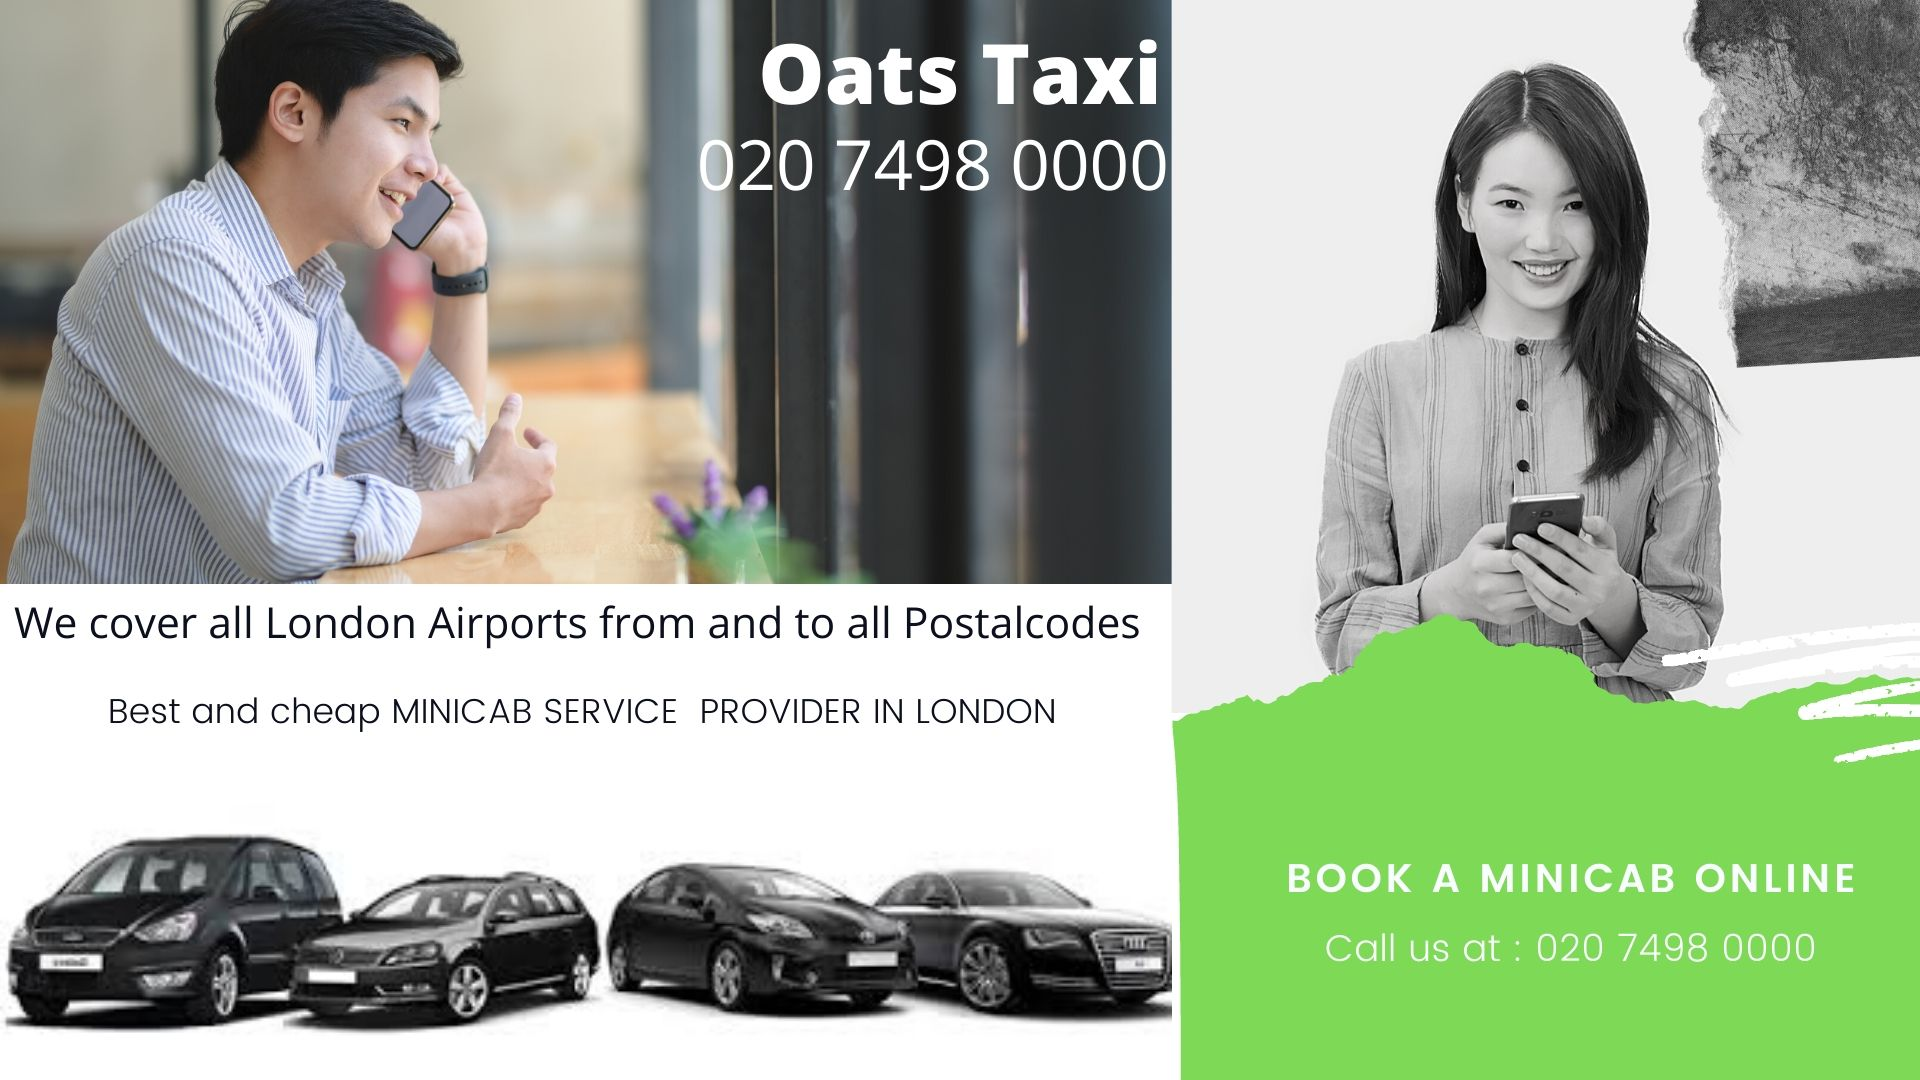 Nearest Minicab Office in Clapham | Nearest Minicab Office in Gatwick Airport | Call now : 02074980000